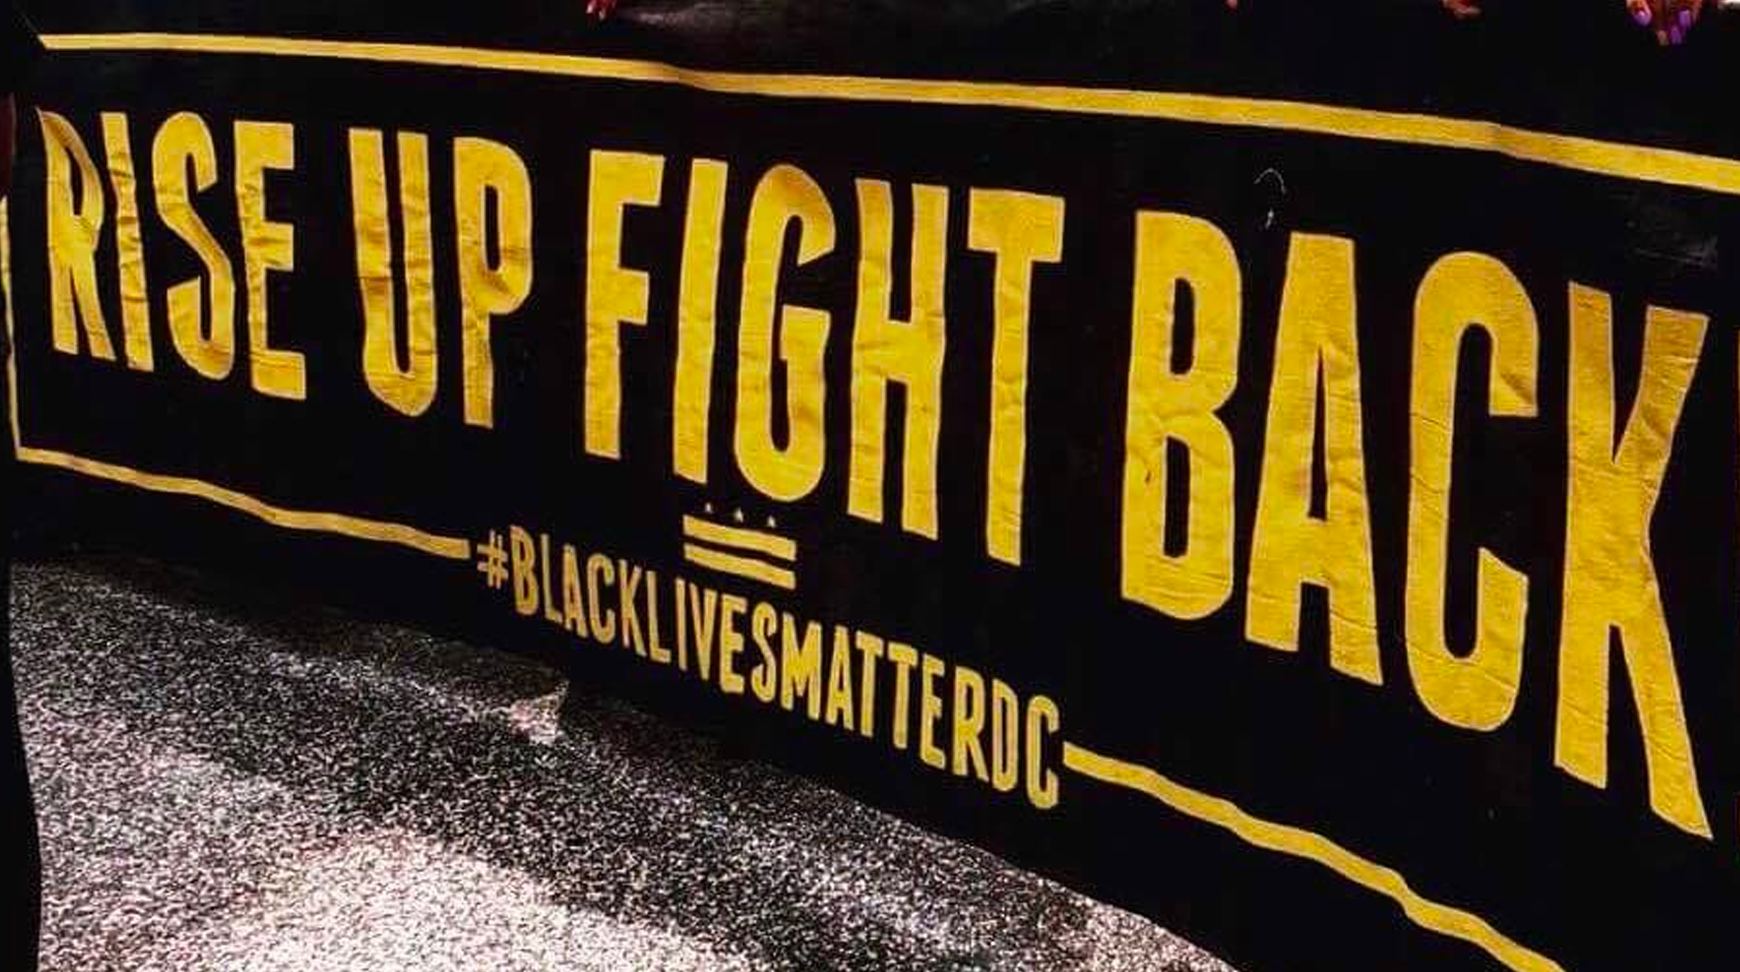 Twitter assists with mass surveillance of BLM